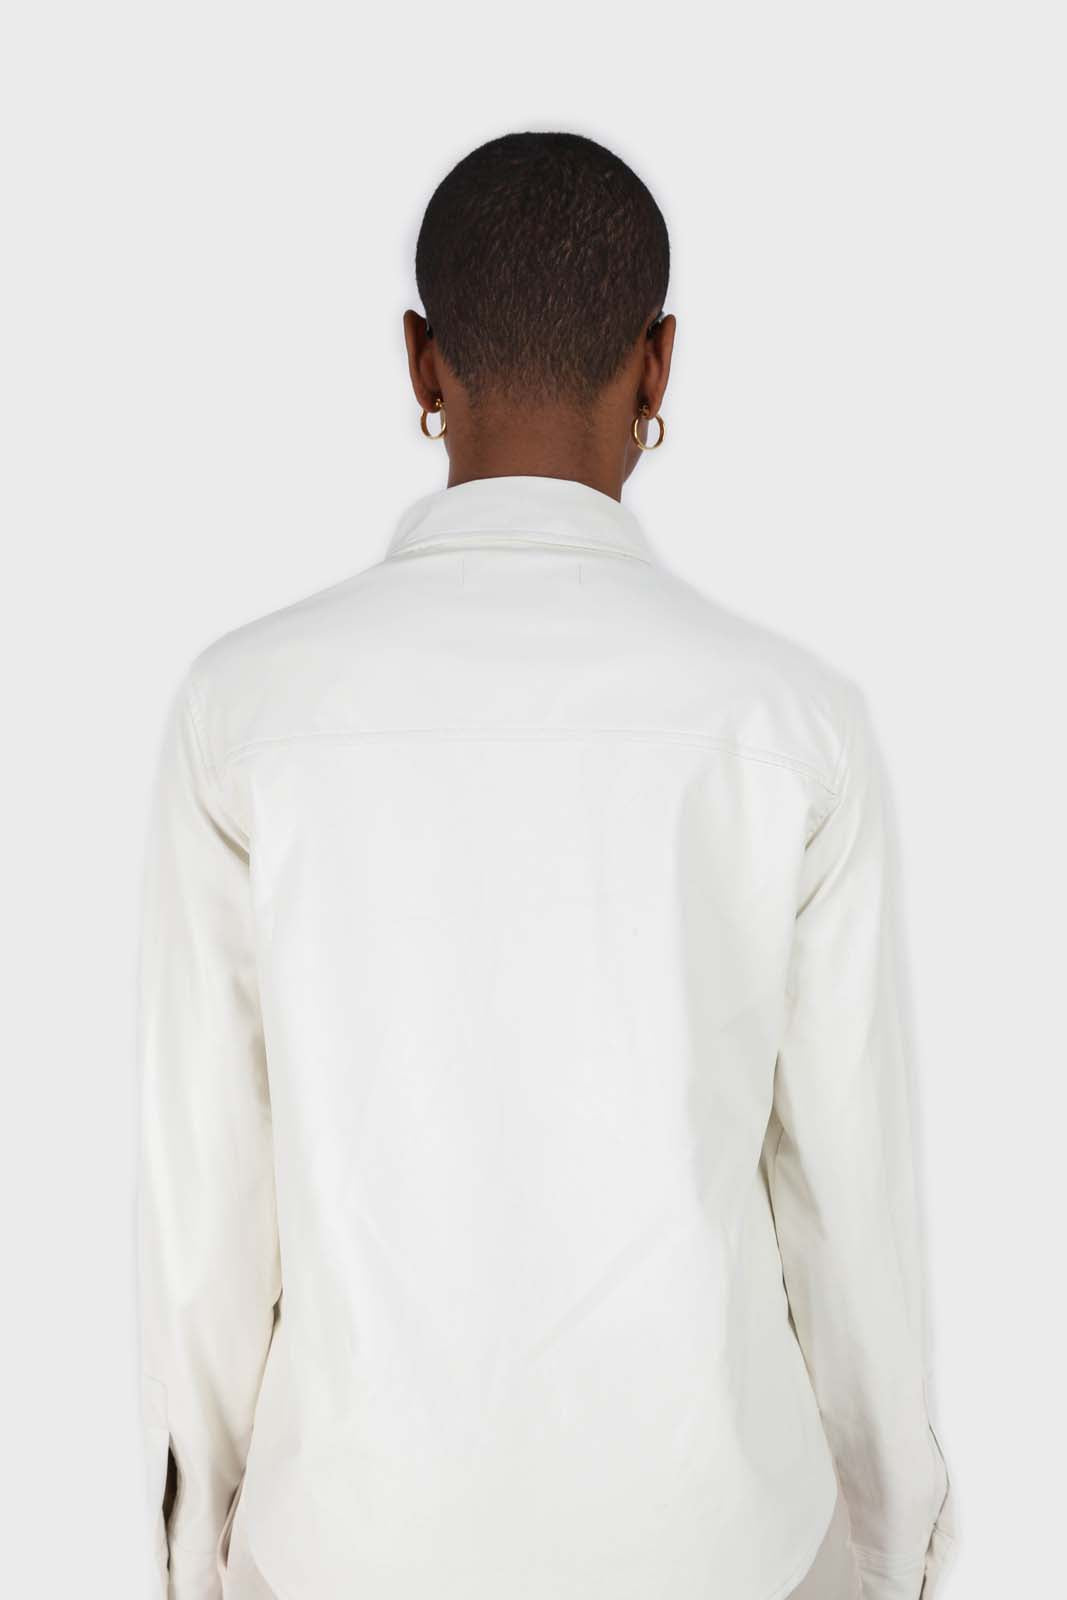 Bone white vegan leather shirt13